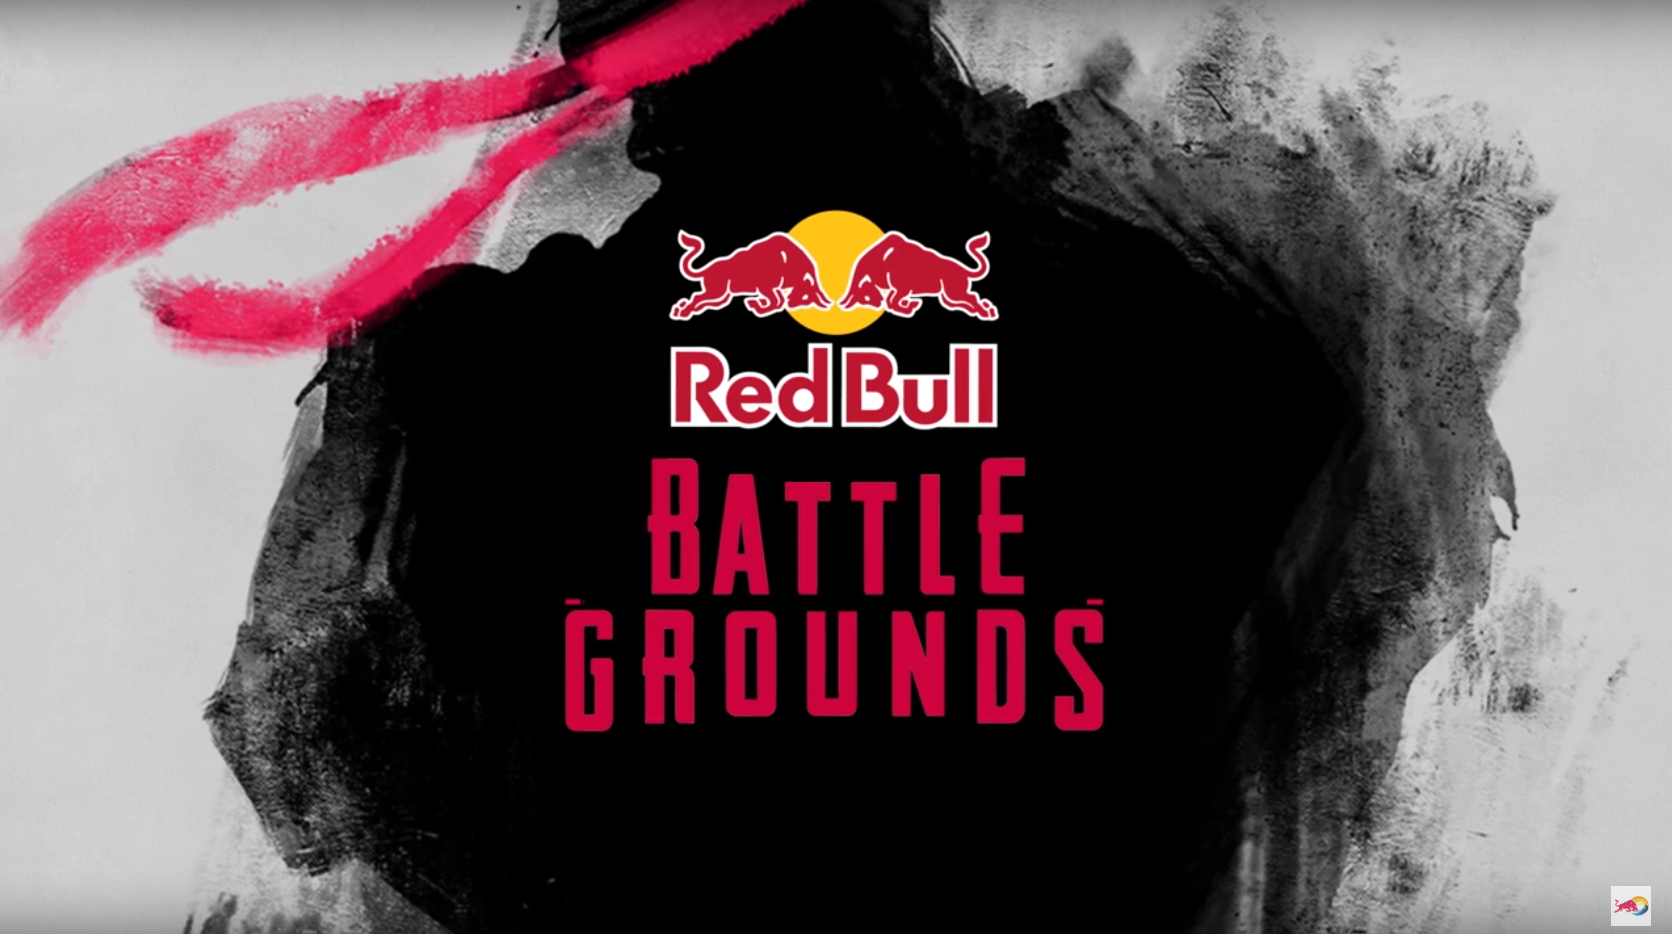 Poster for eSport tournaments staged by Red Bull Battle Grounds